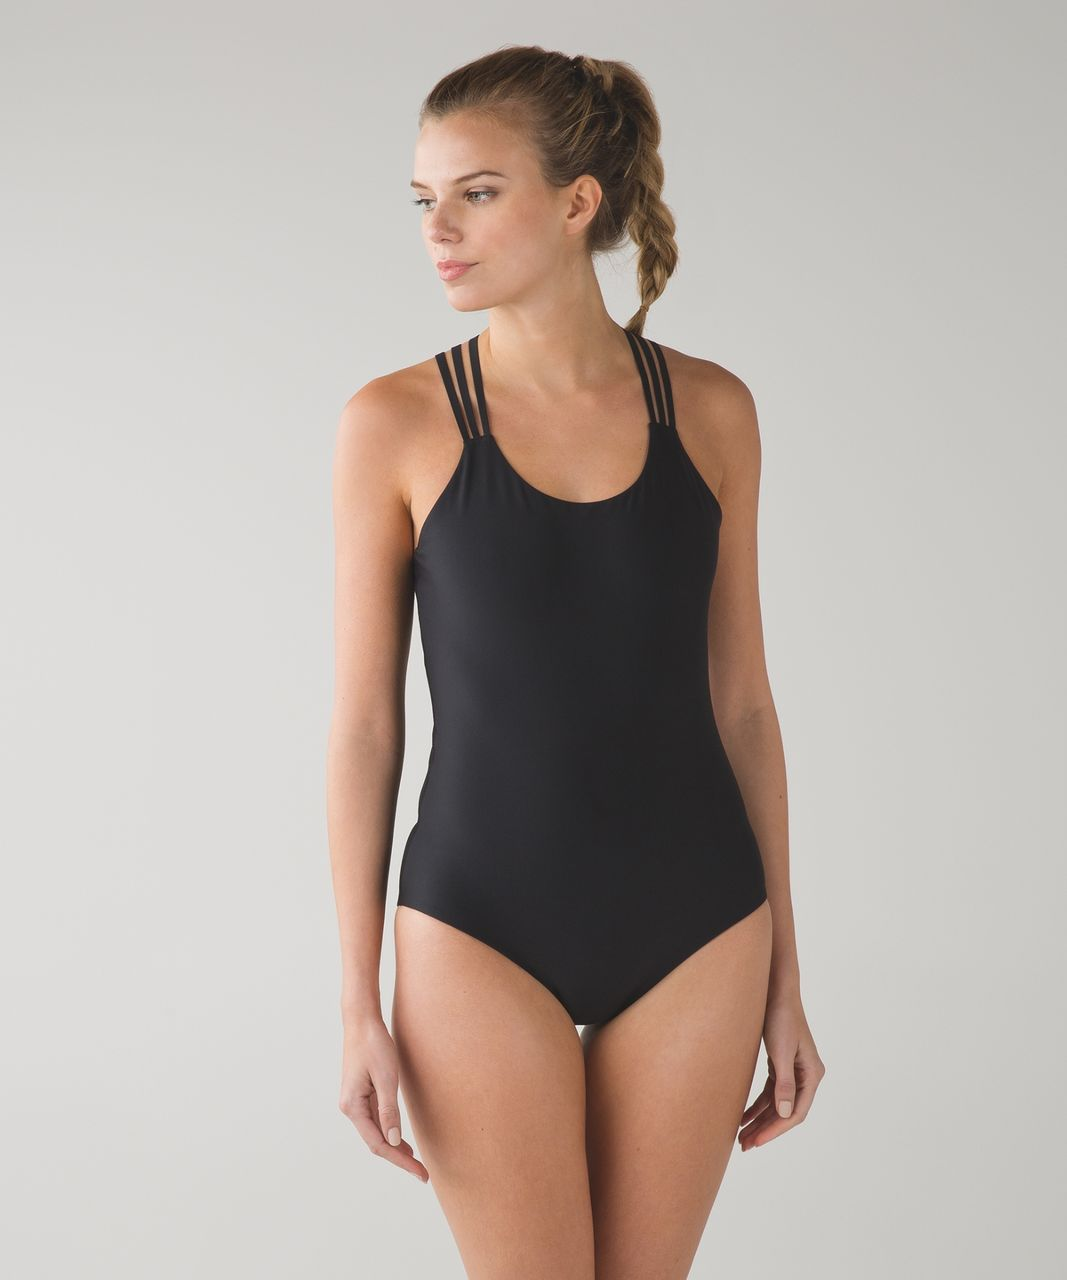 Lululemon Water: Strappy Back One Piece - Black